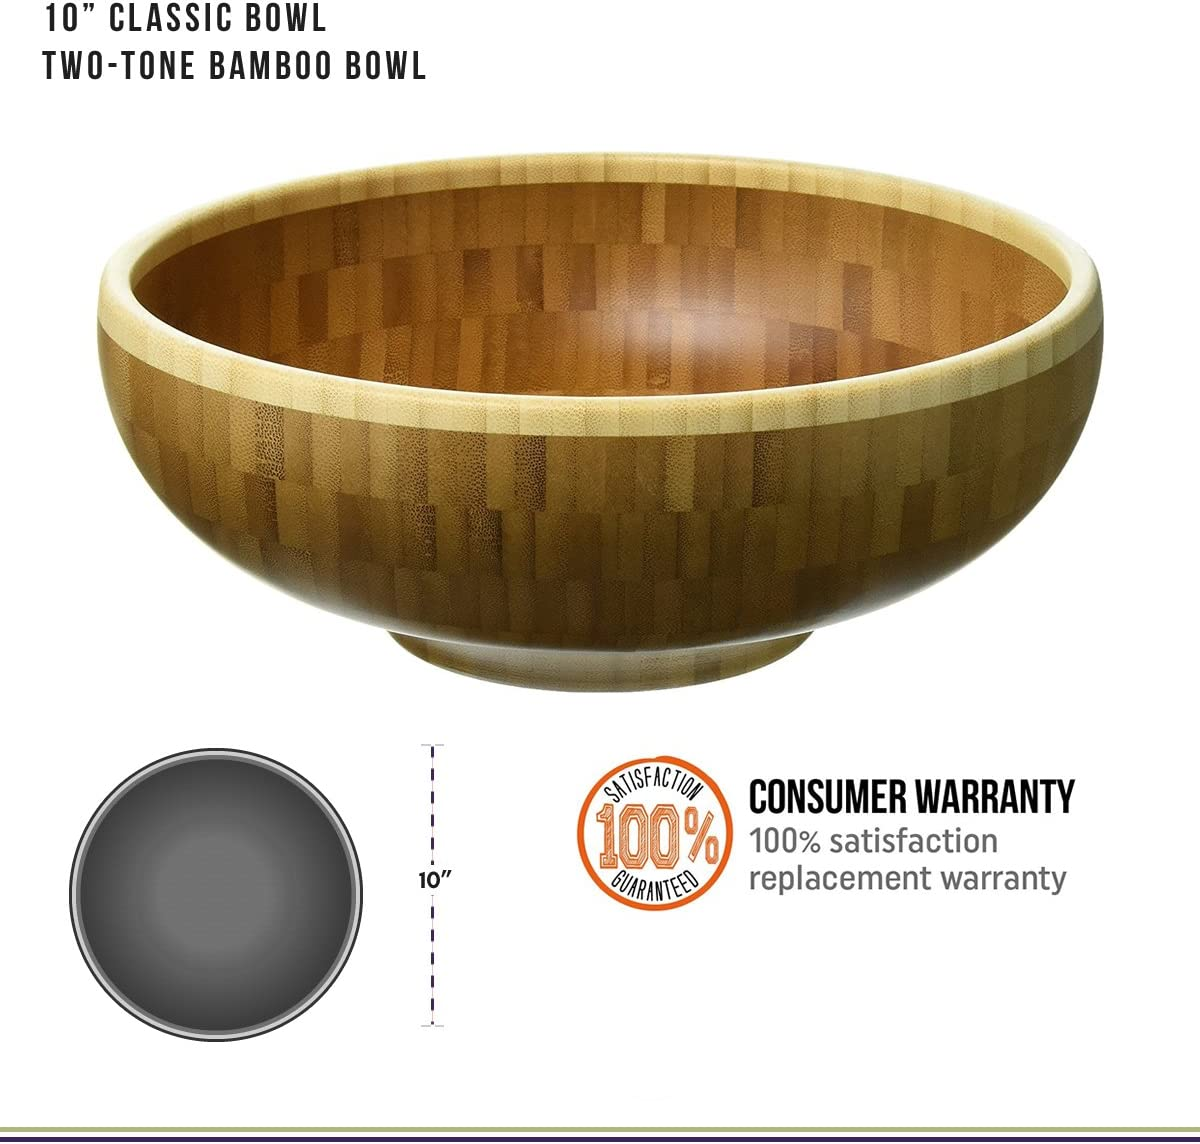 10 in Totally Bamboo Classic Bowl